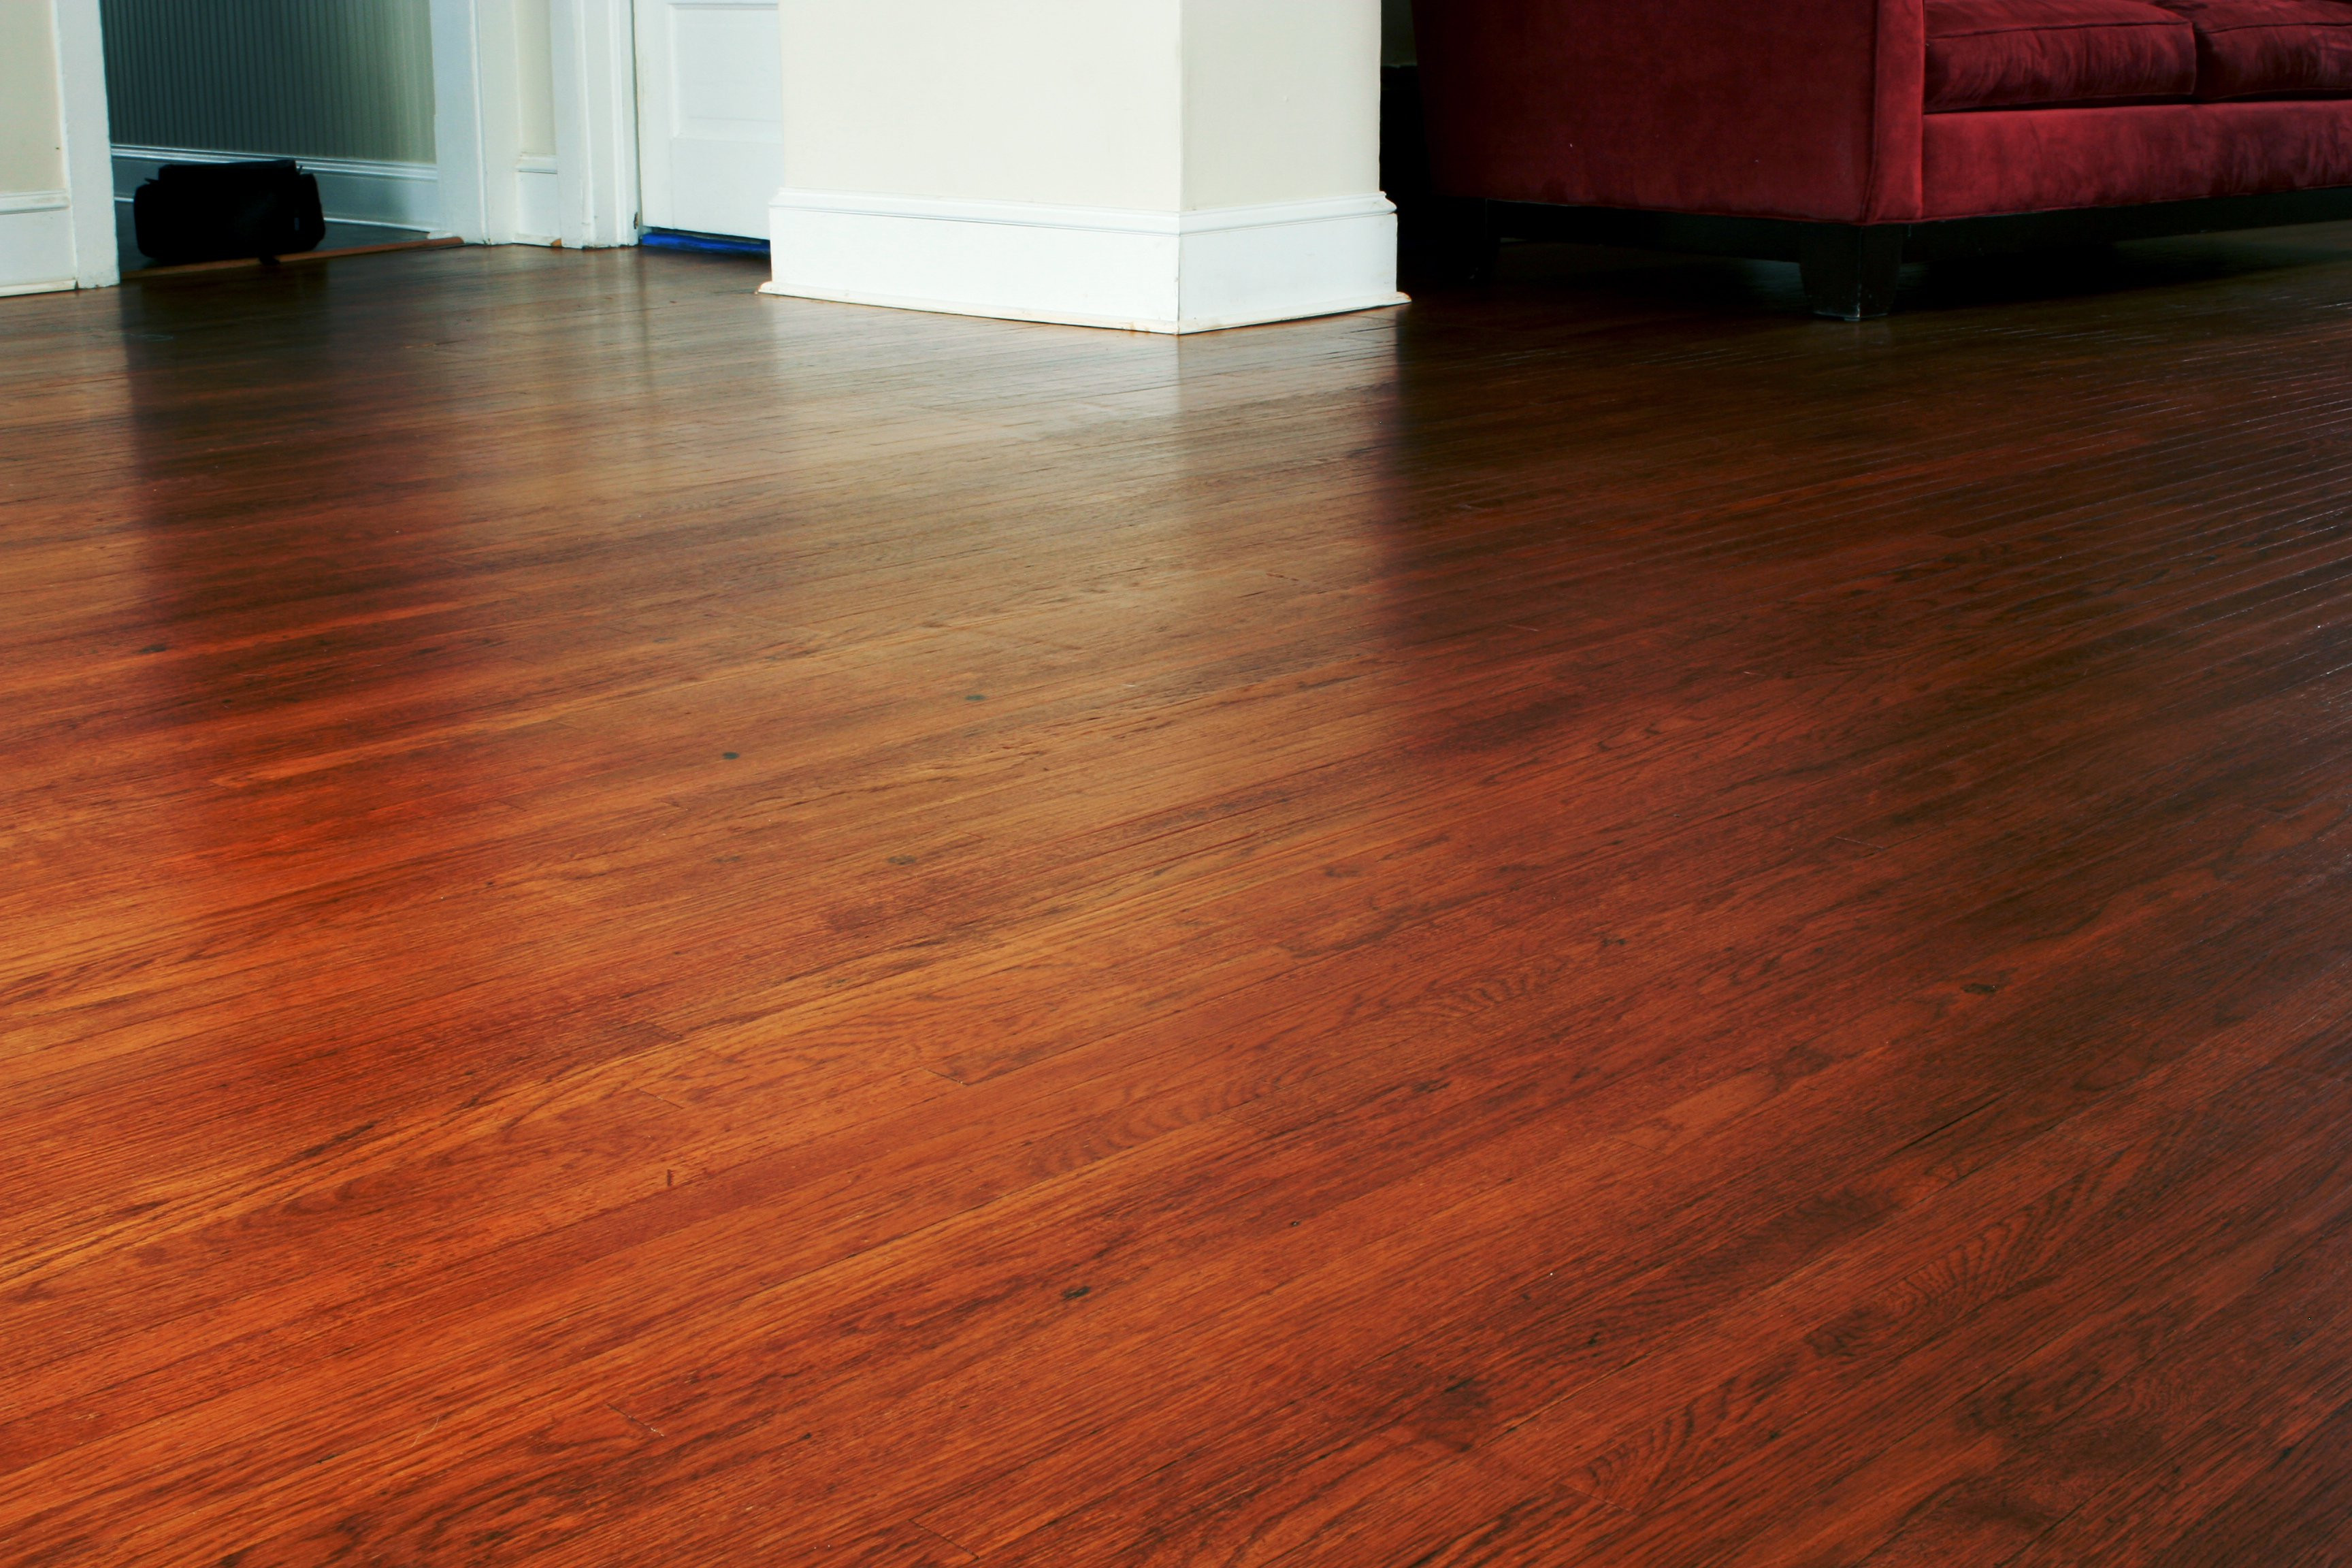 Hardwood Floor Refinishing Products Home Depot Of Hardwood Floor Refinishing Marietta Ga How to Diagnose and Repair with Regard to Hardwood Floor Refinishing Marietta Ga How to Diagnose and Repair Sloping Floors Homeadvisor